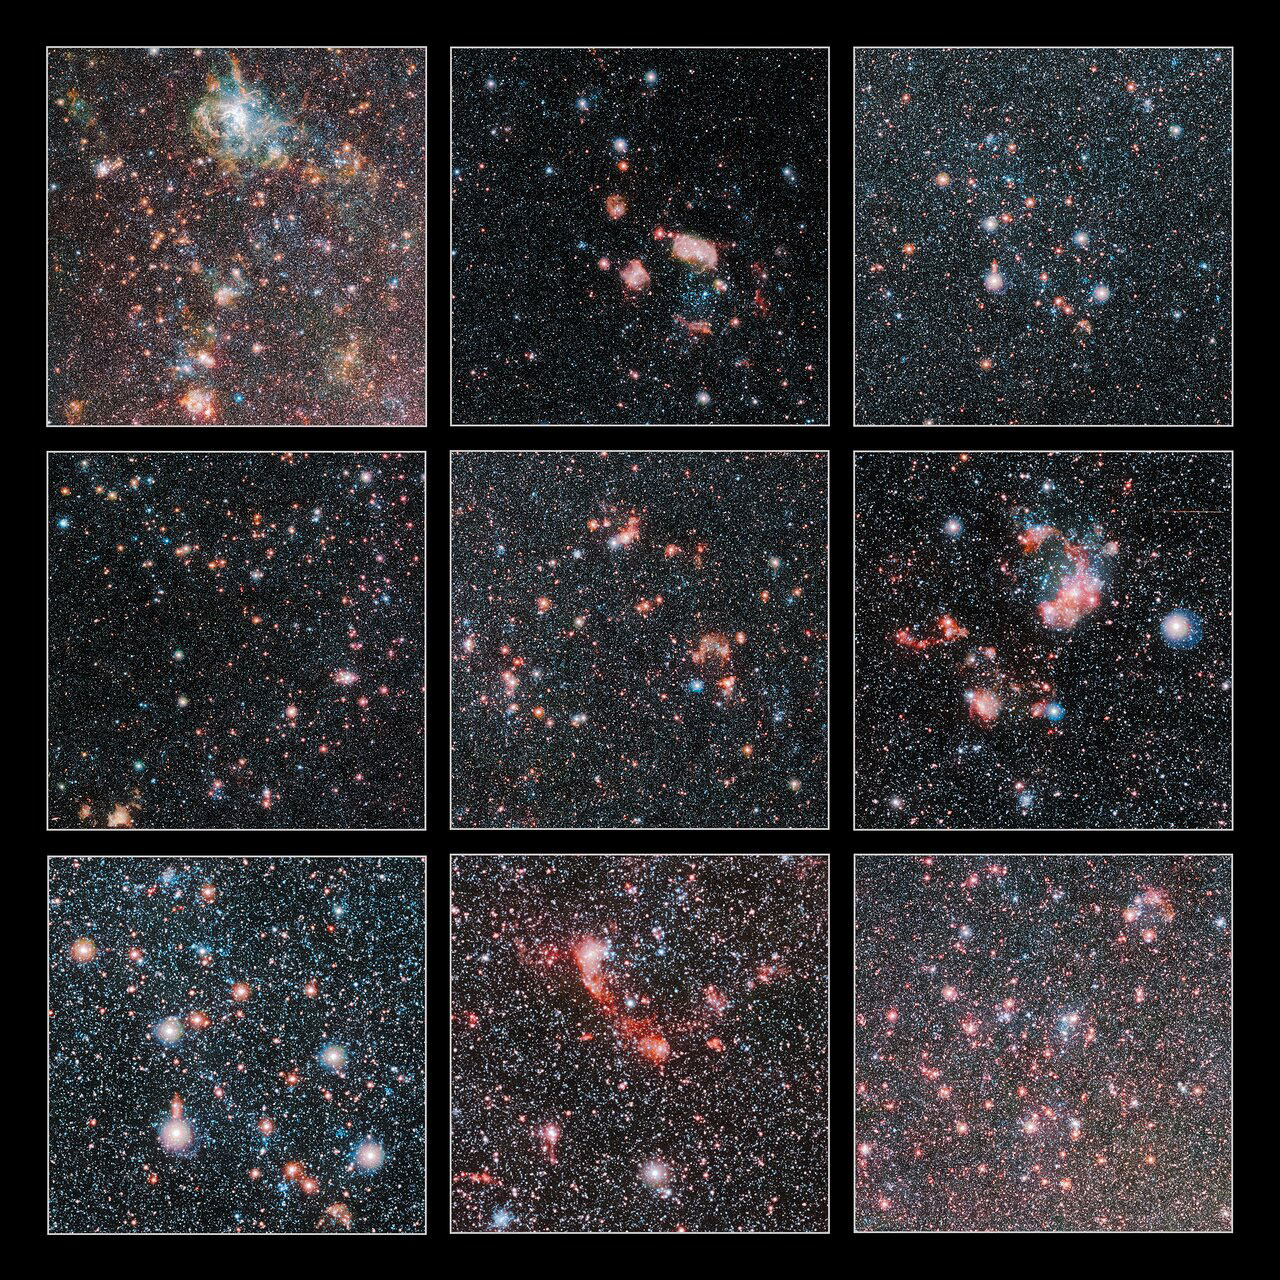 These cutouts highlight some of the most spectacular regions in the Large Magellanic Cloud, which is one of our closest galactic neighbours. The image was taken with the VISTA telescope at ESO's Paranal Observatory. Credit: ESO/VMC Survey